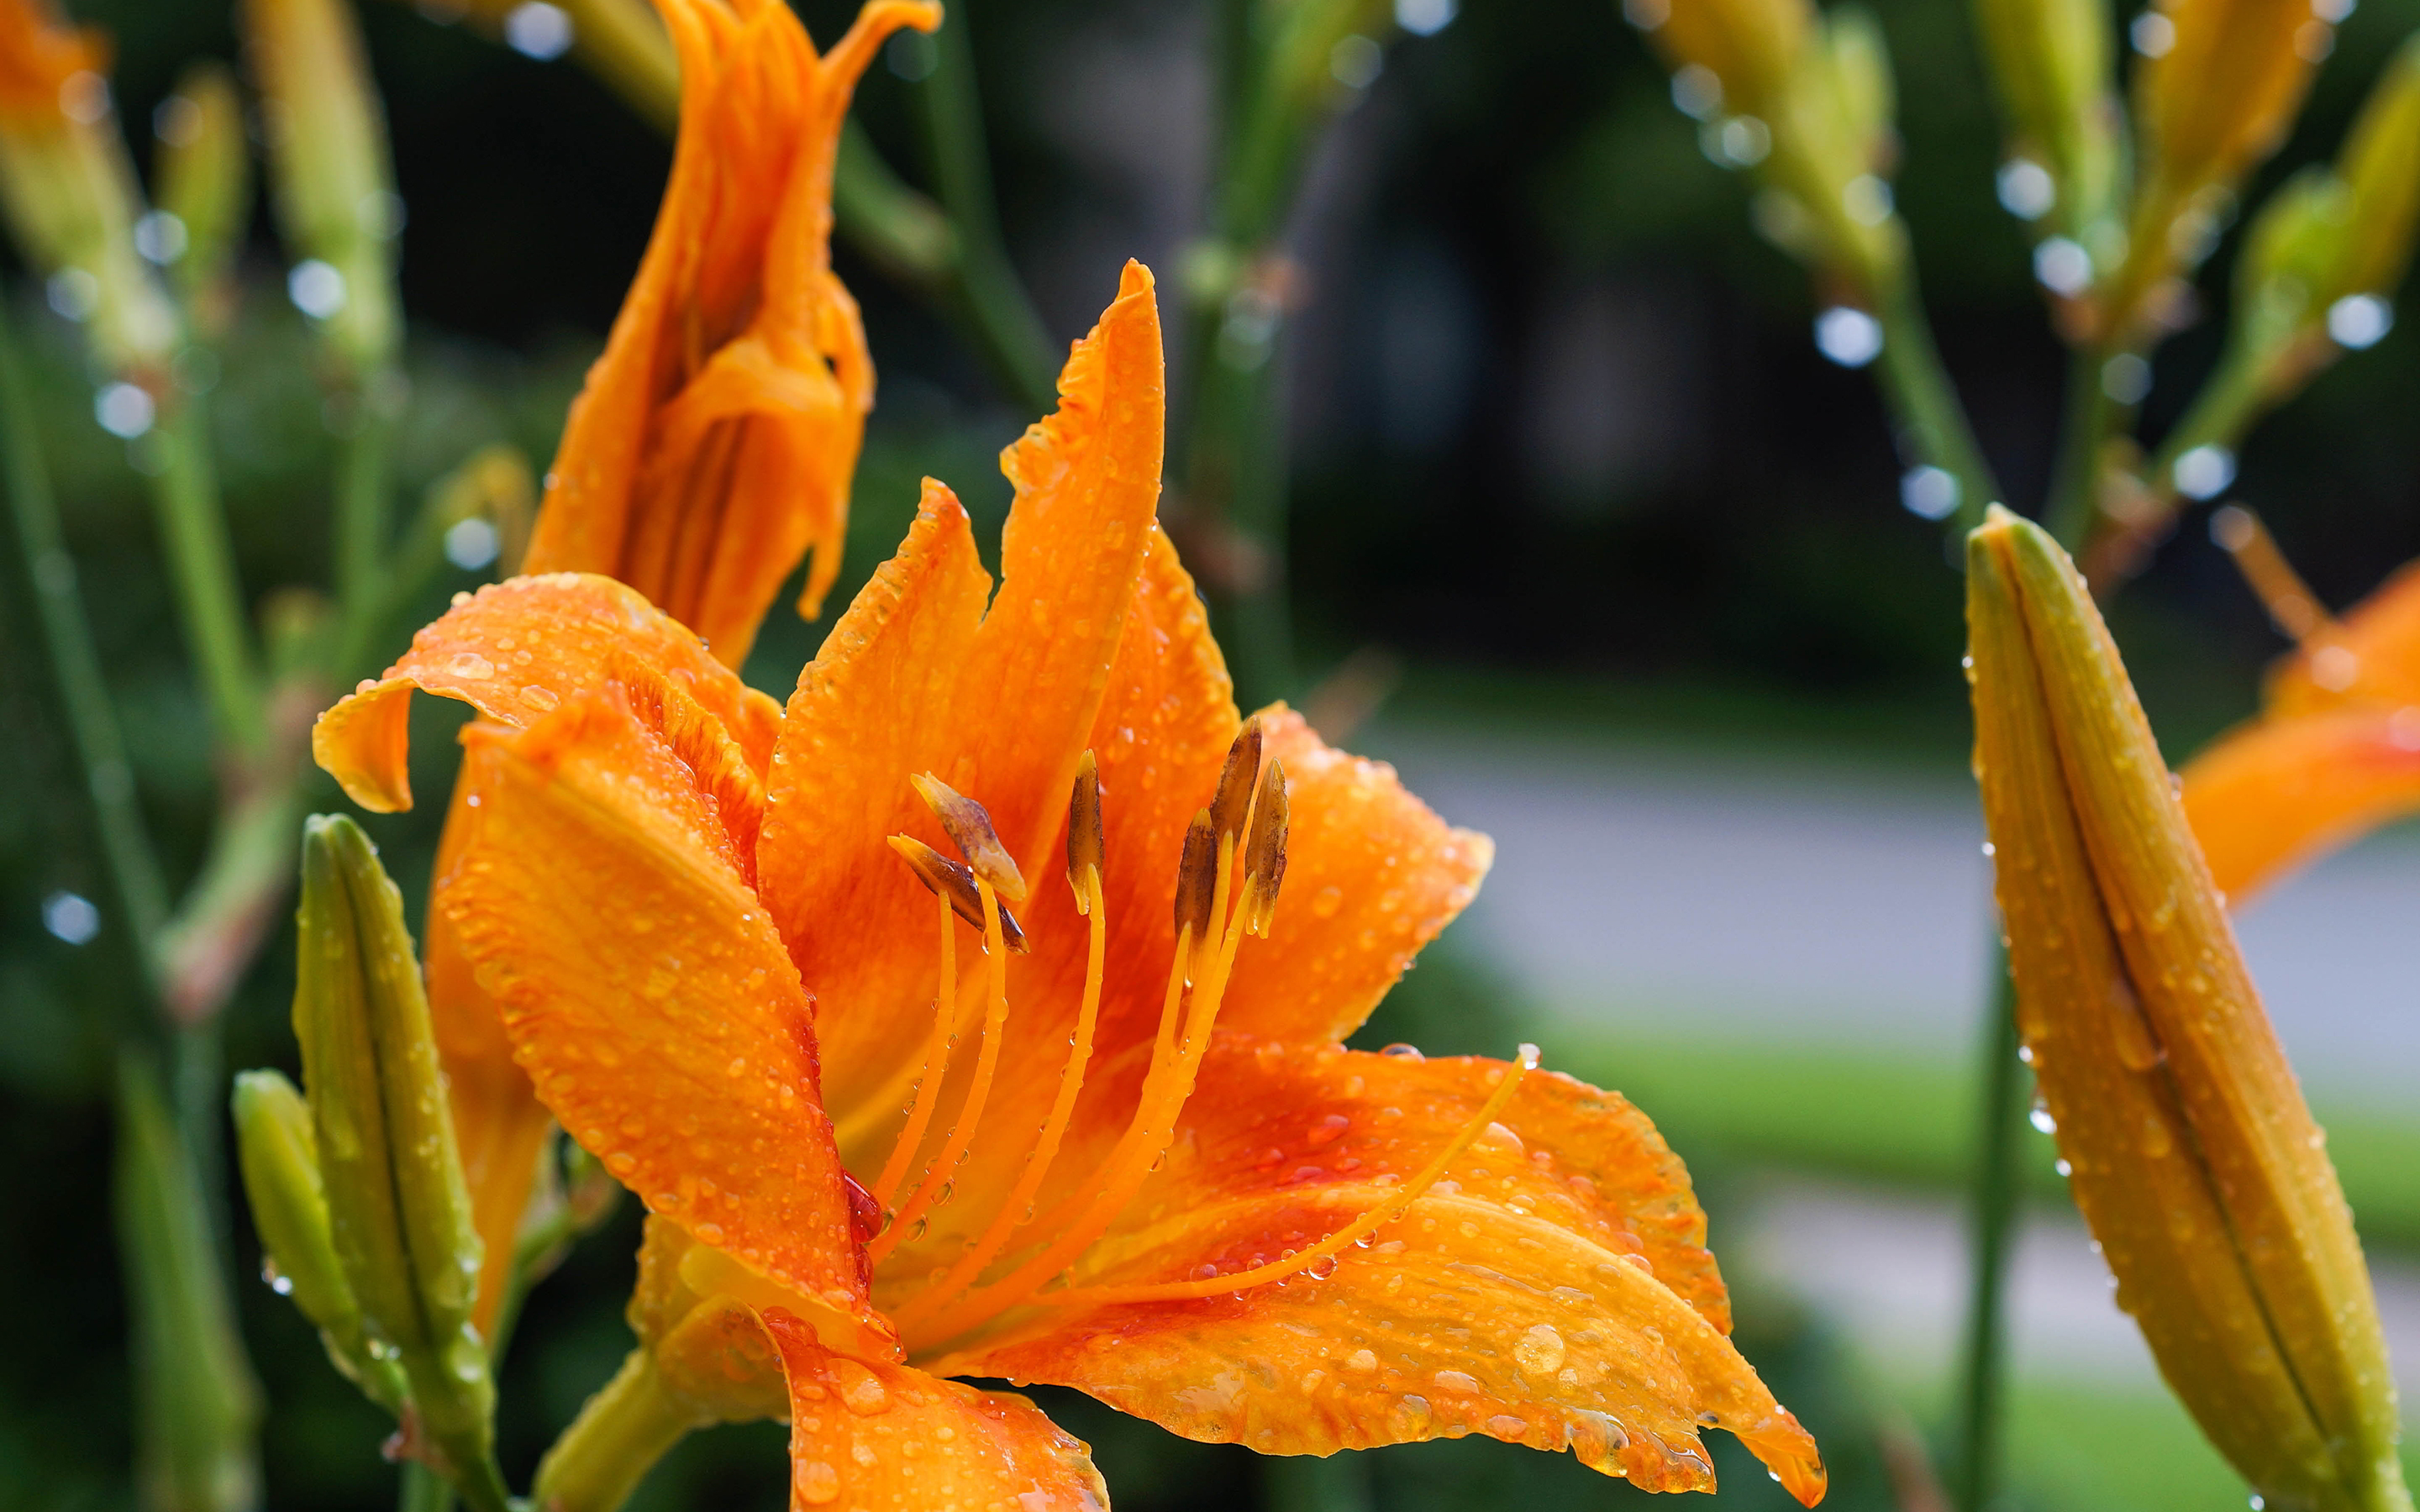 Cute Trumpet Wallpapers Daylily Dew Drops Flower Hd Desktop Wallpapers 4k Hd